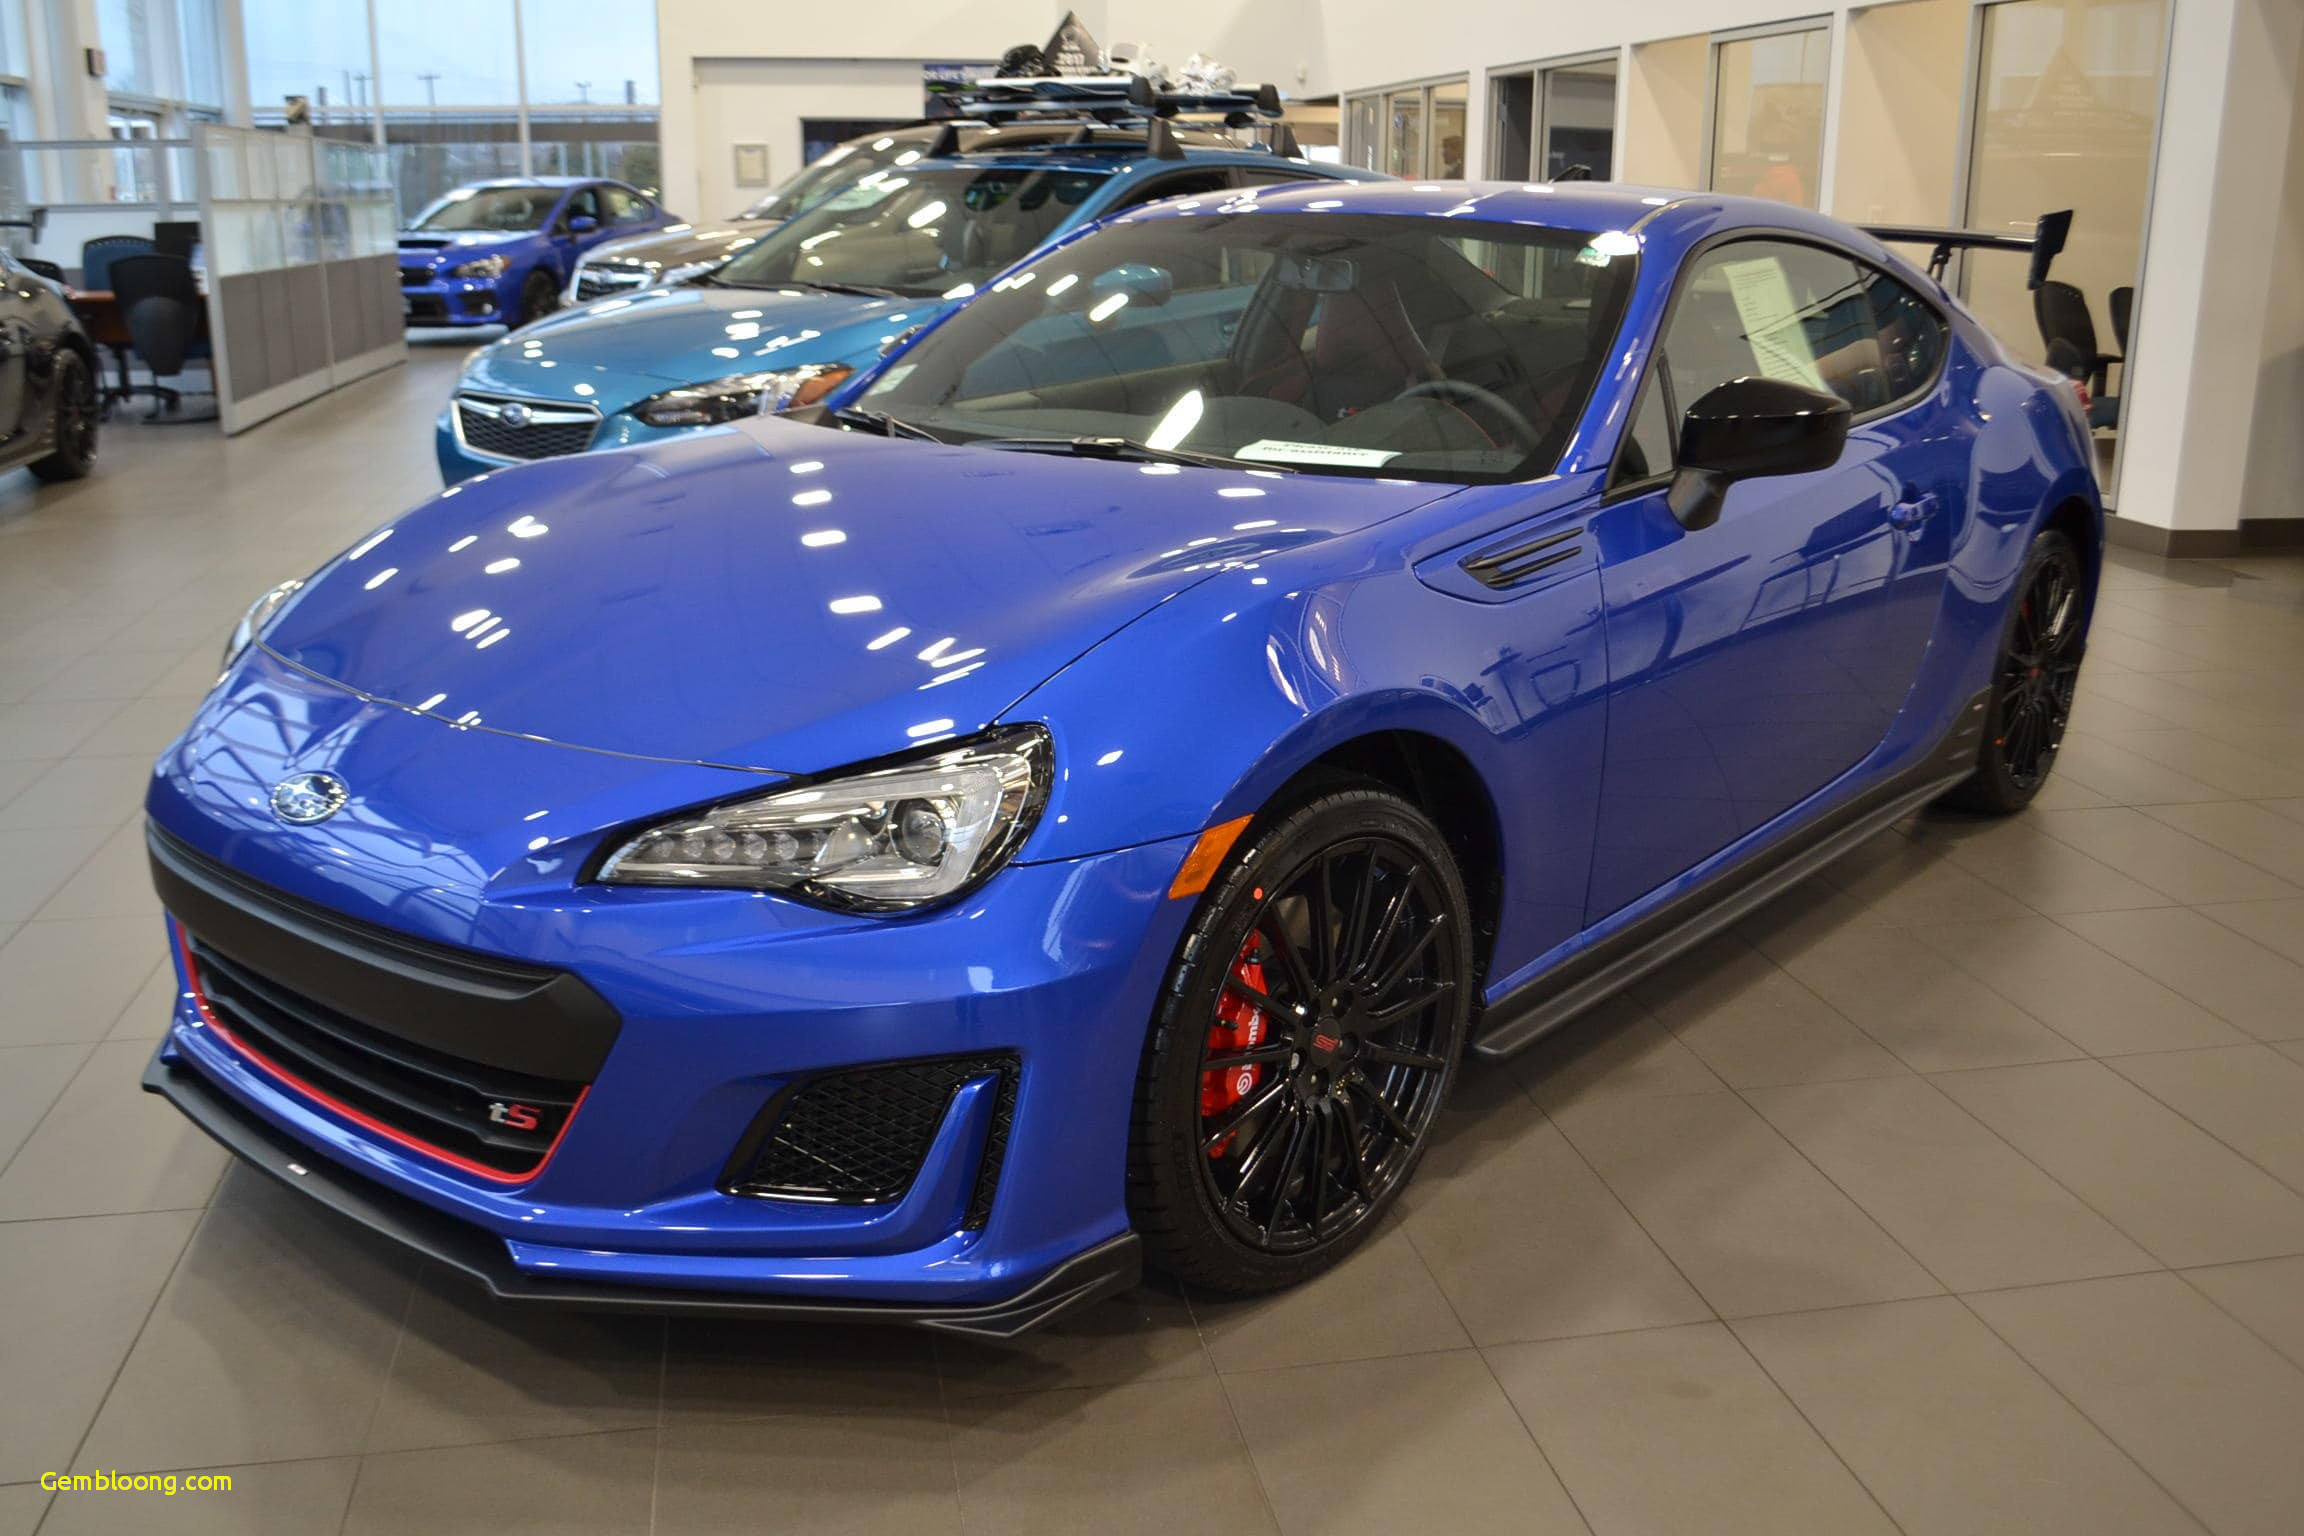 59 A 2019 Subaru Brz Sti Turbo Price and Review